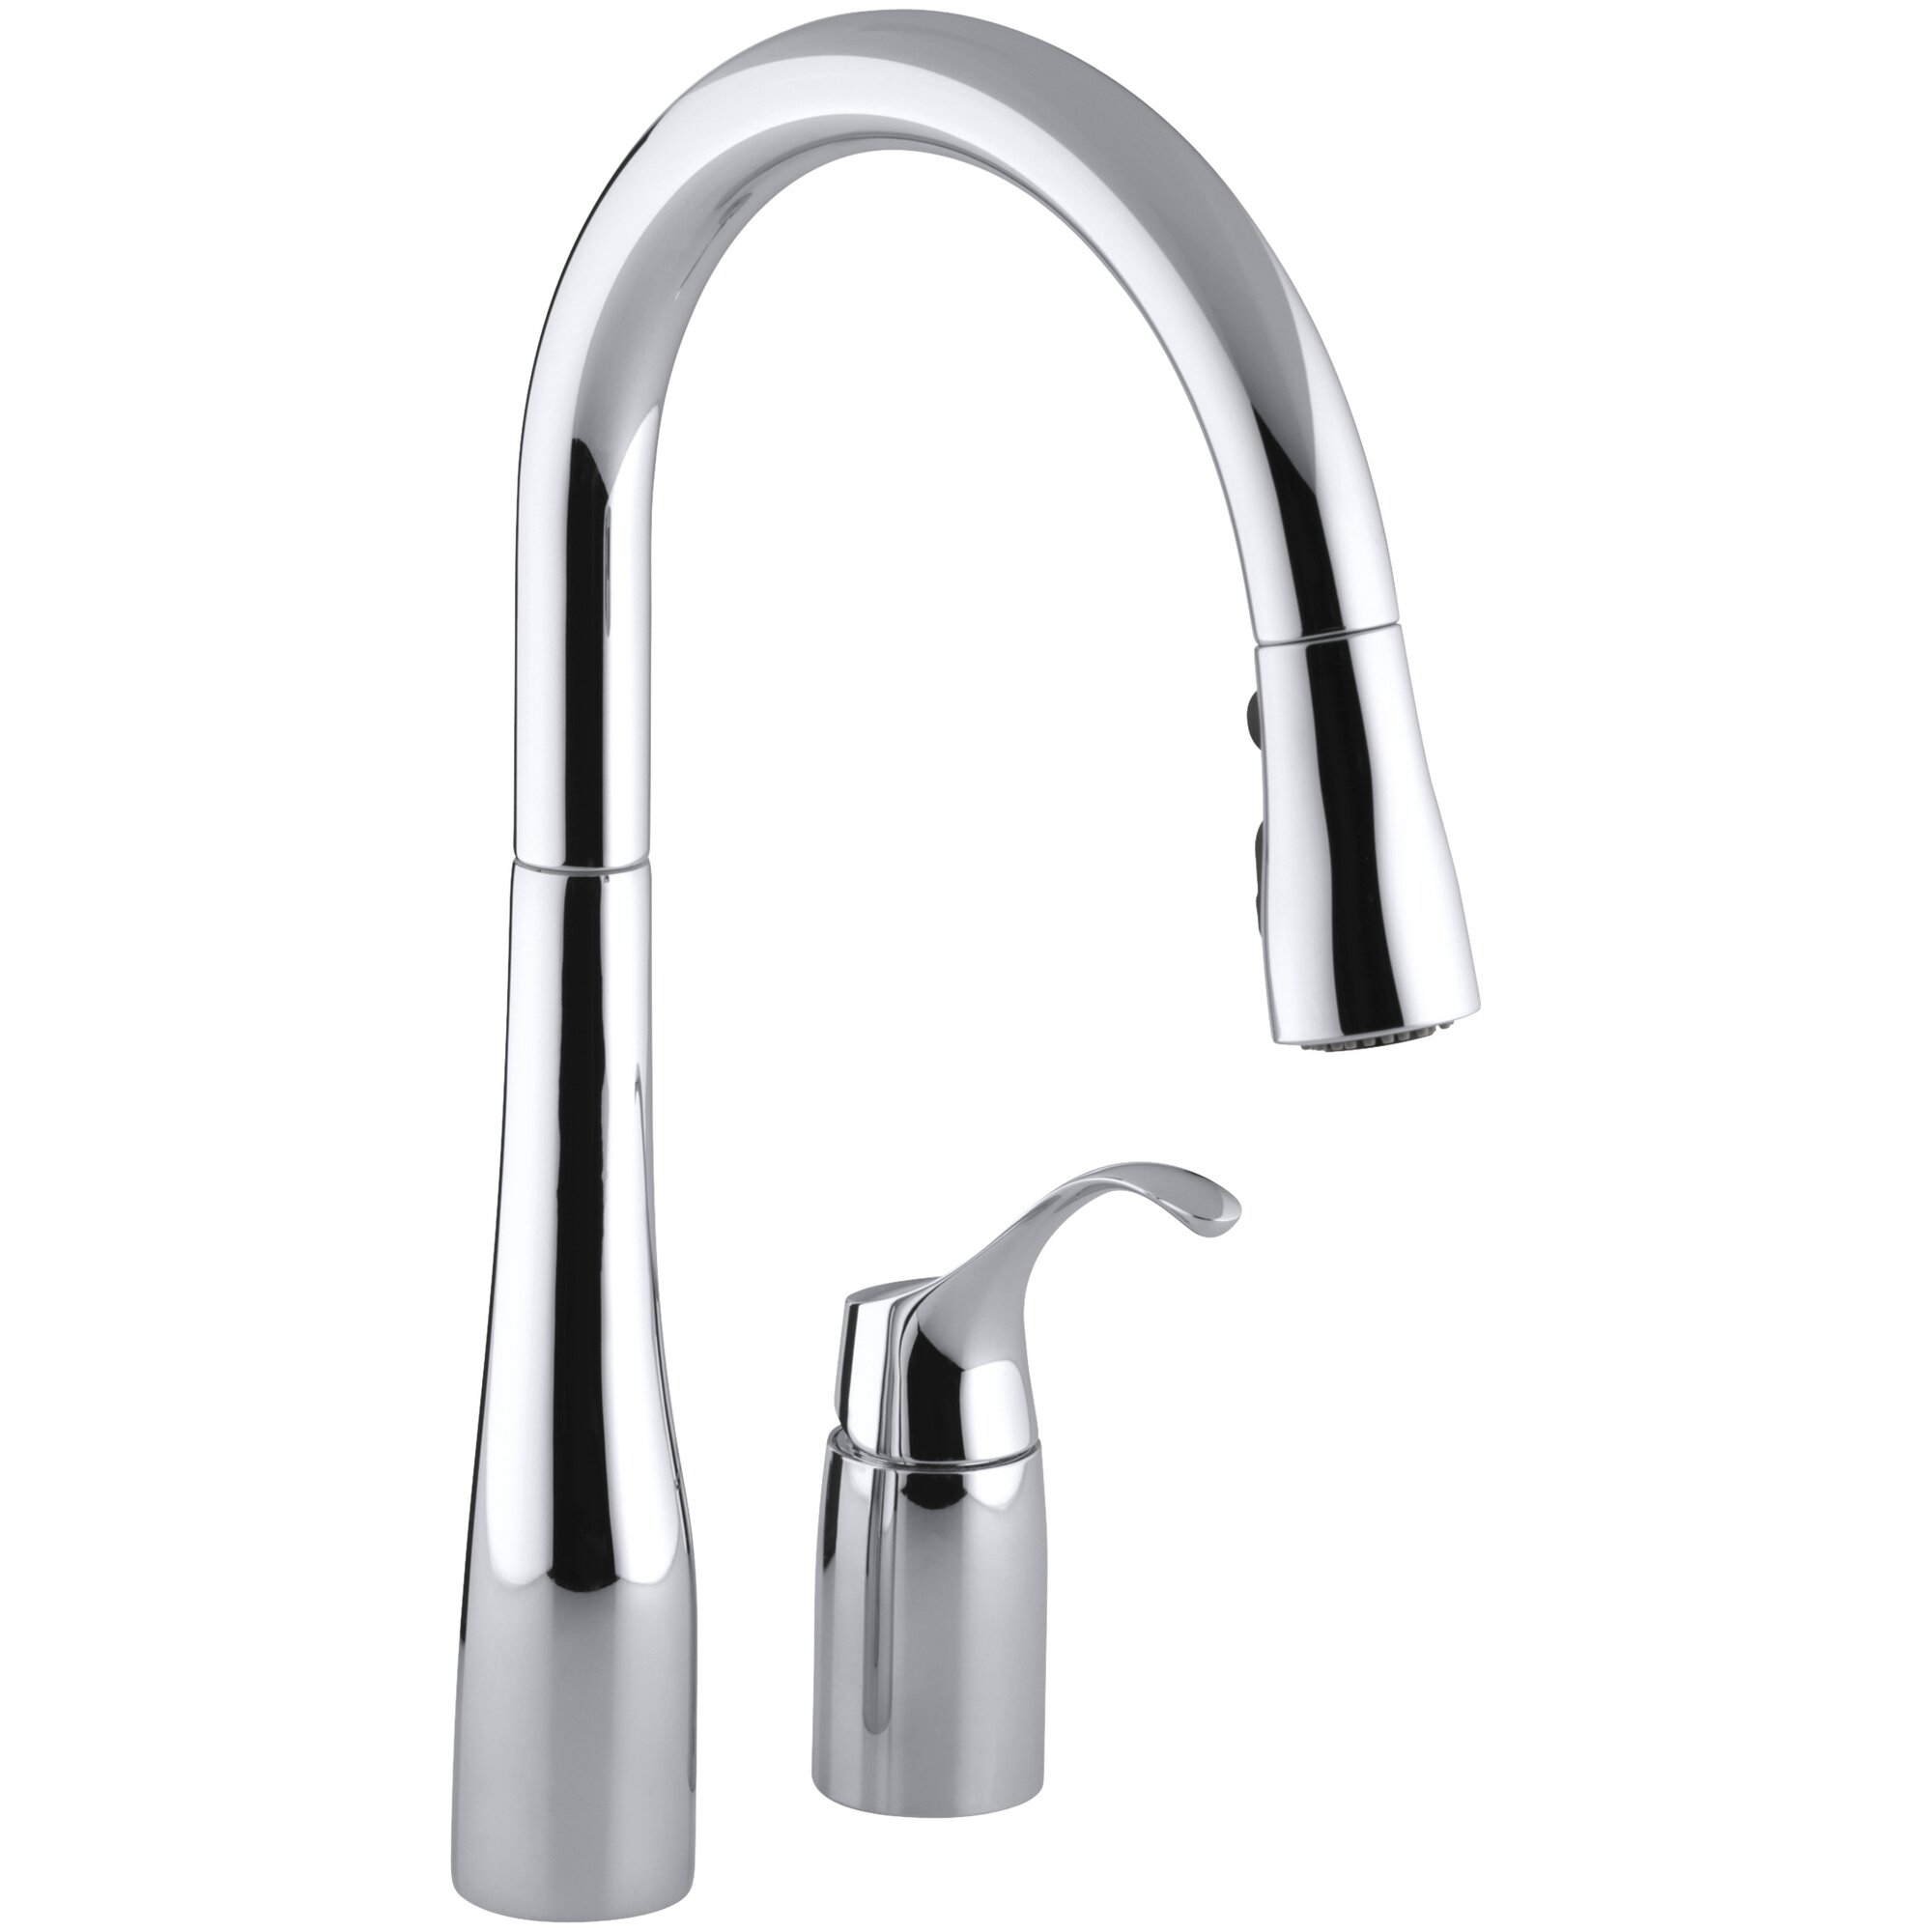 Pull Down Kitchen Faucets Reviews Kohler Simplice Two Hole Kitchen Sink Faucet With 16 1 8